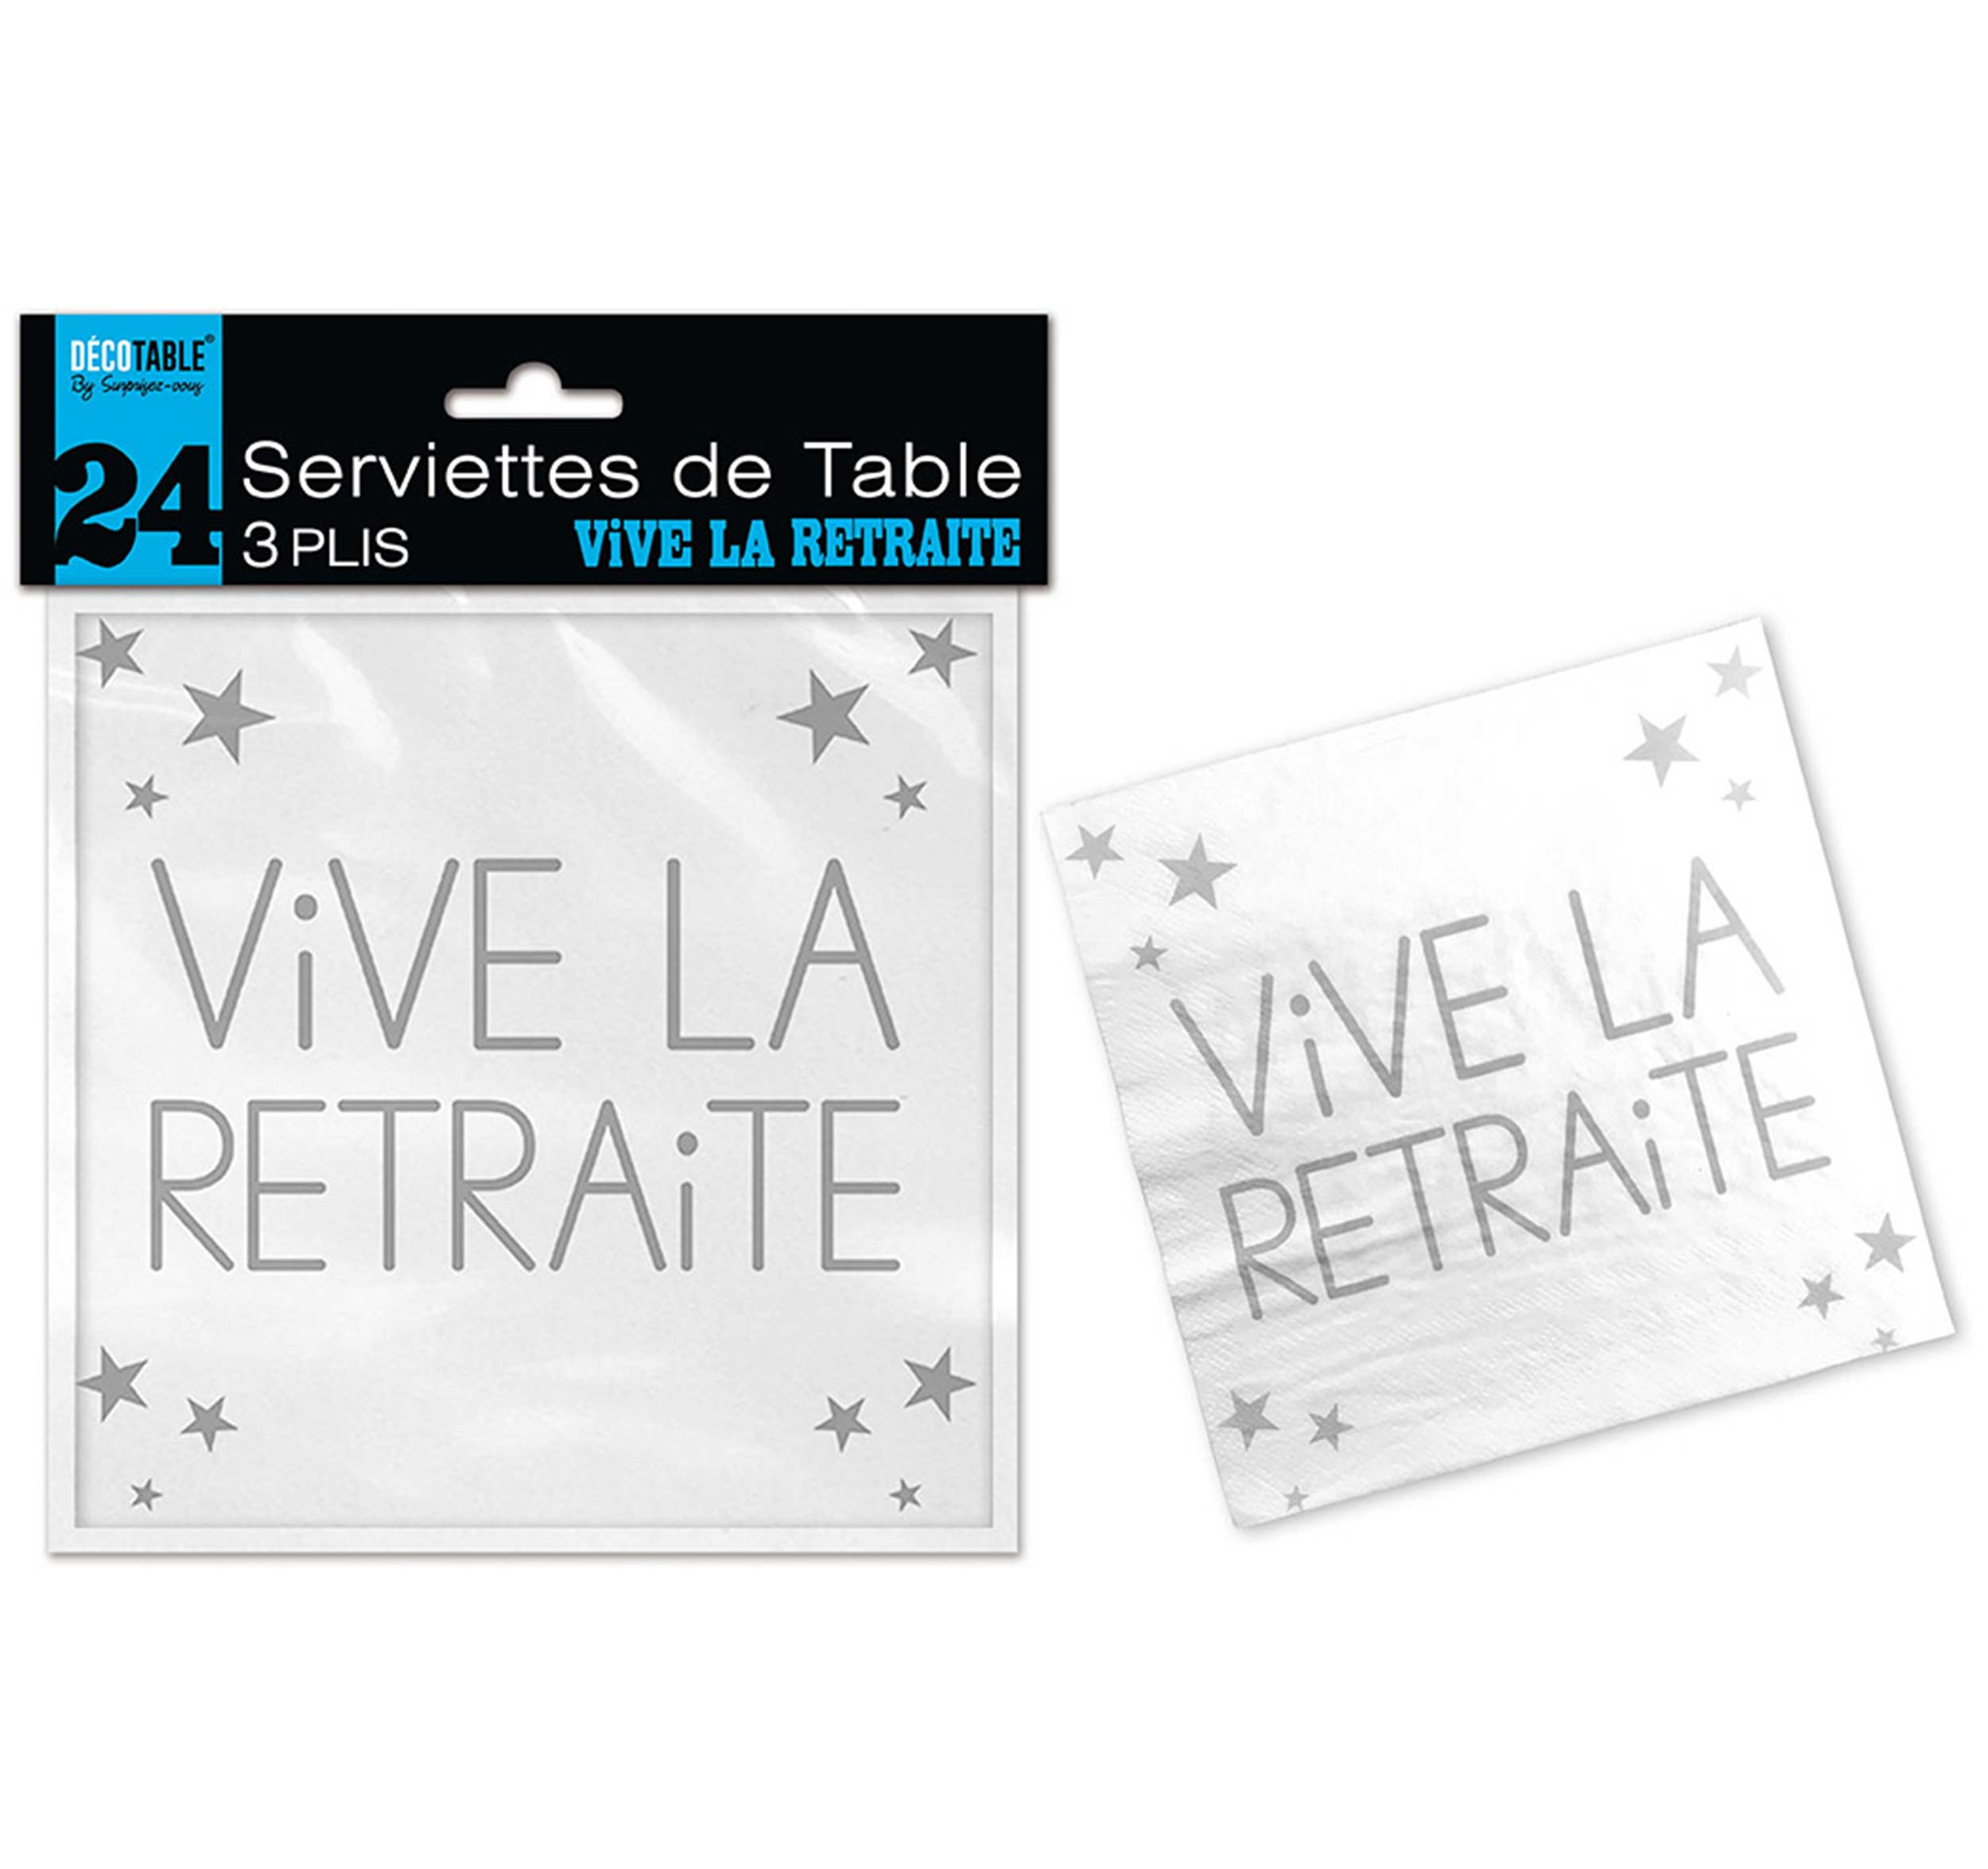 24 Serviettes de Table à l'âge 3 plis